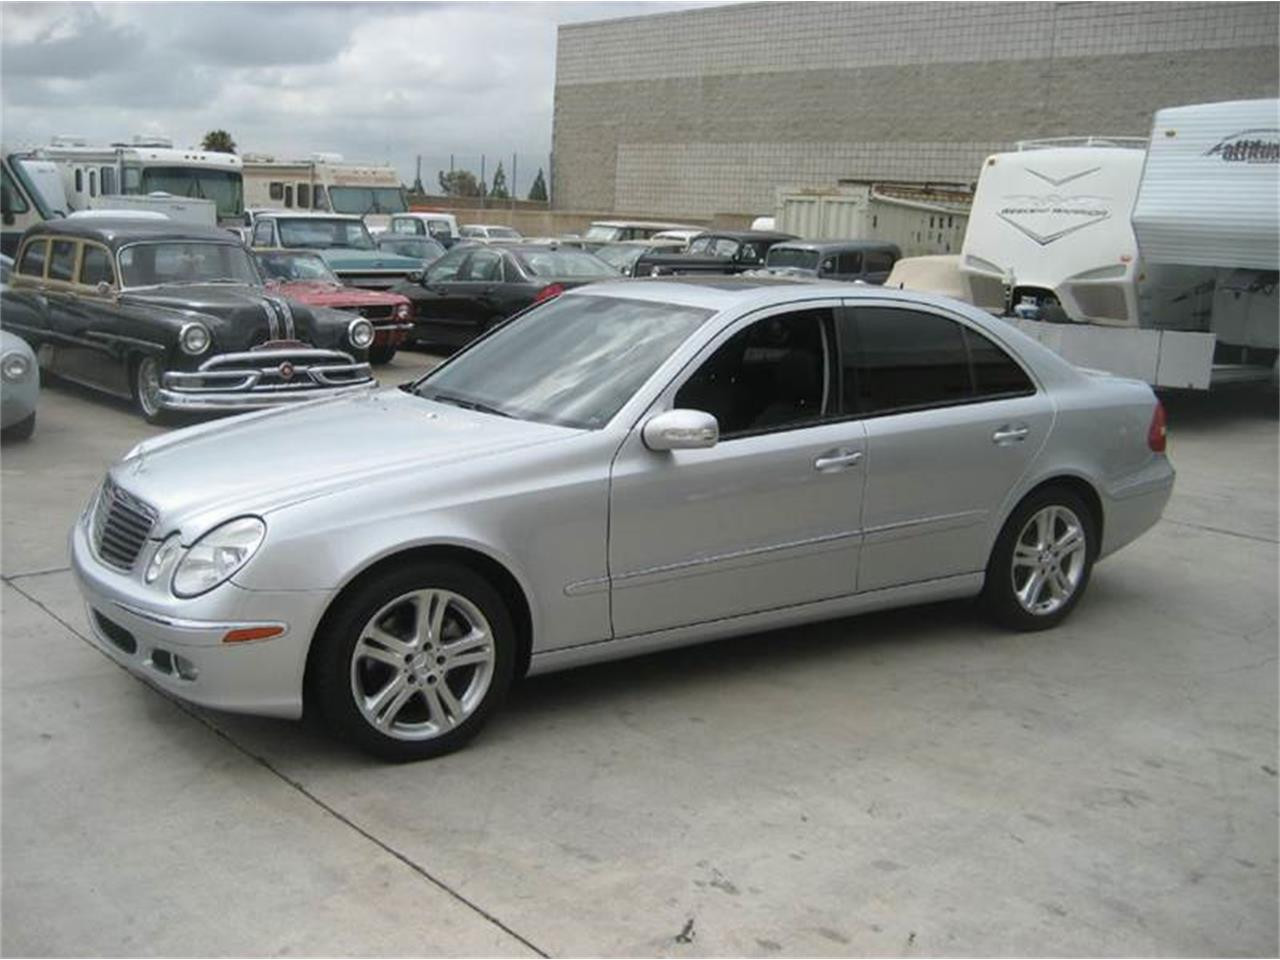 Large Picture of 2006 Mercedes-Benz E-Class located in Brea California Auction Vehicle Offered by Highline Motorsports - EG2M